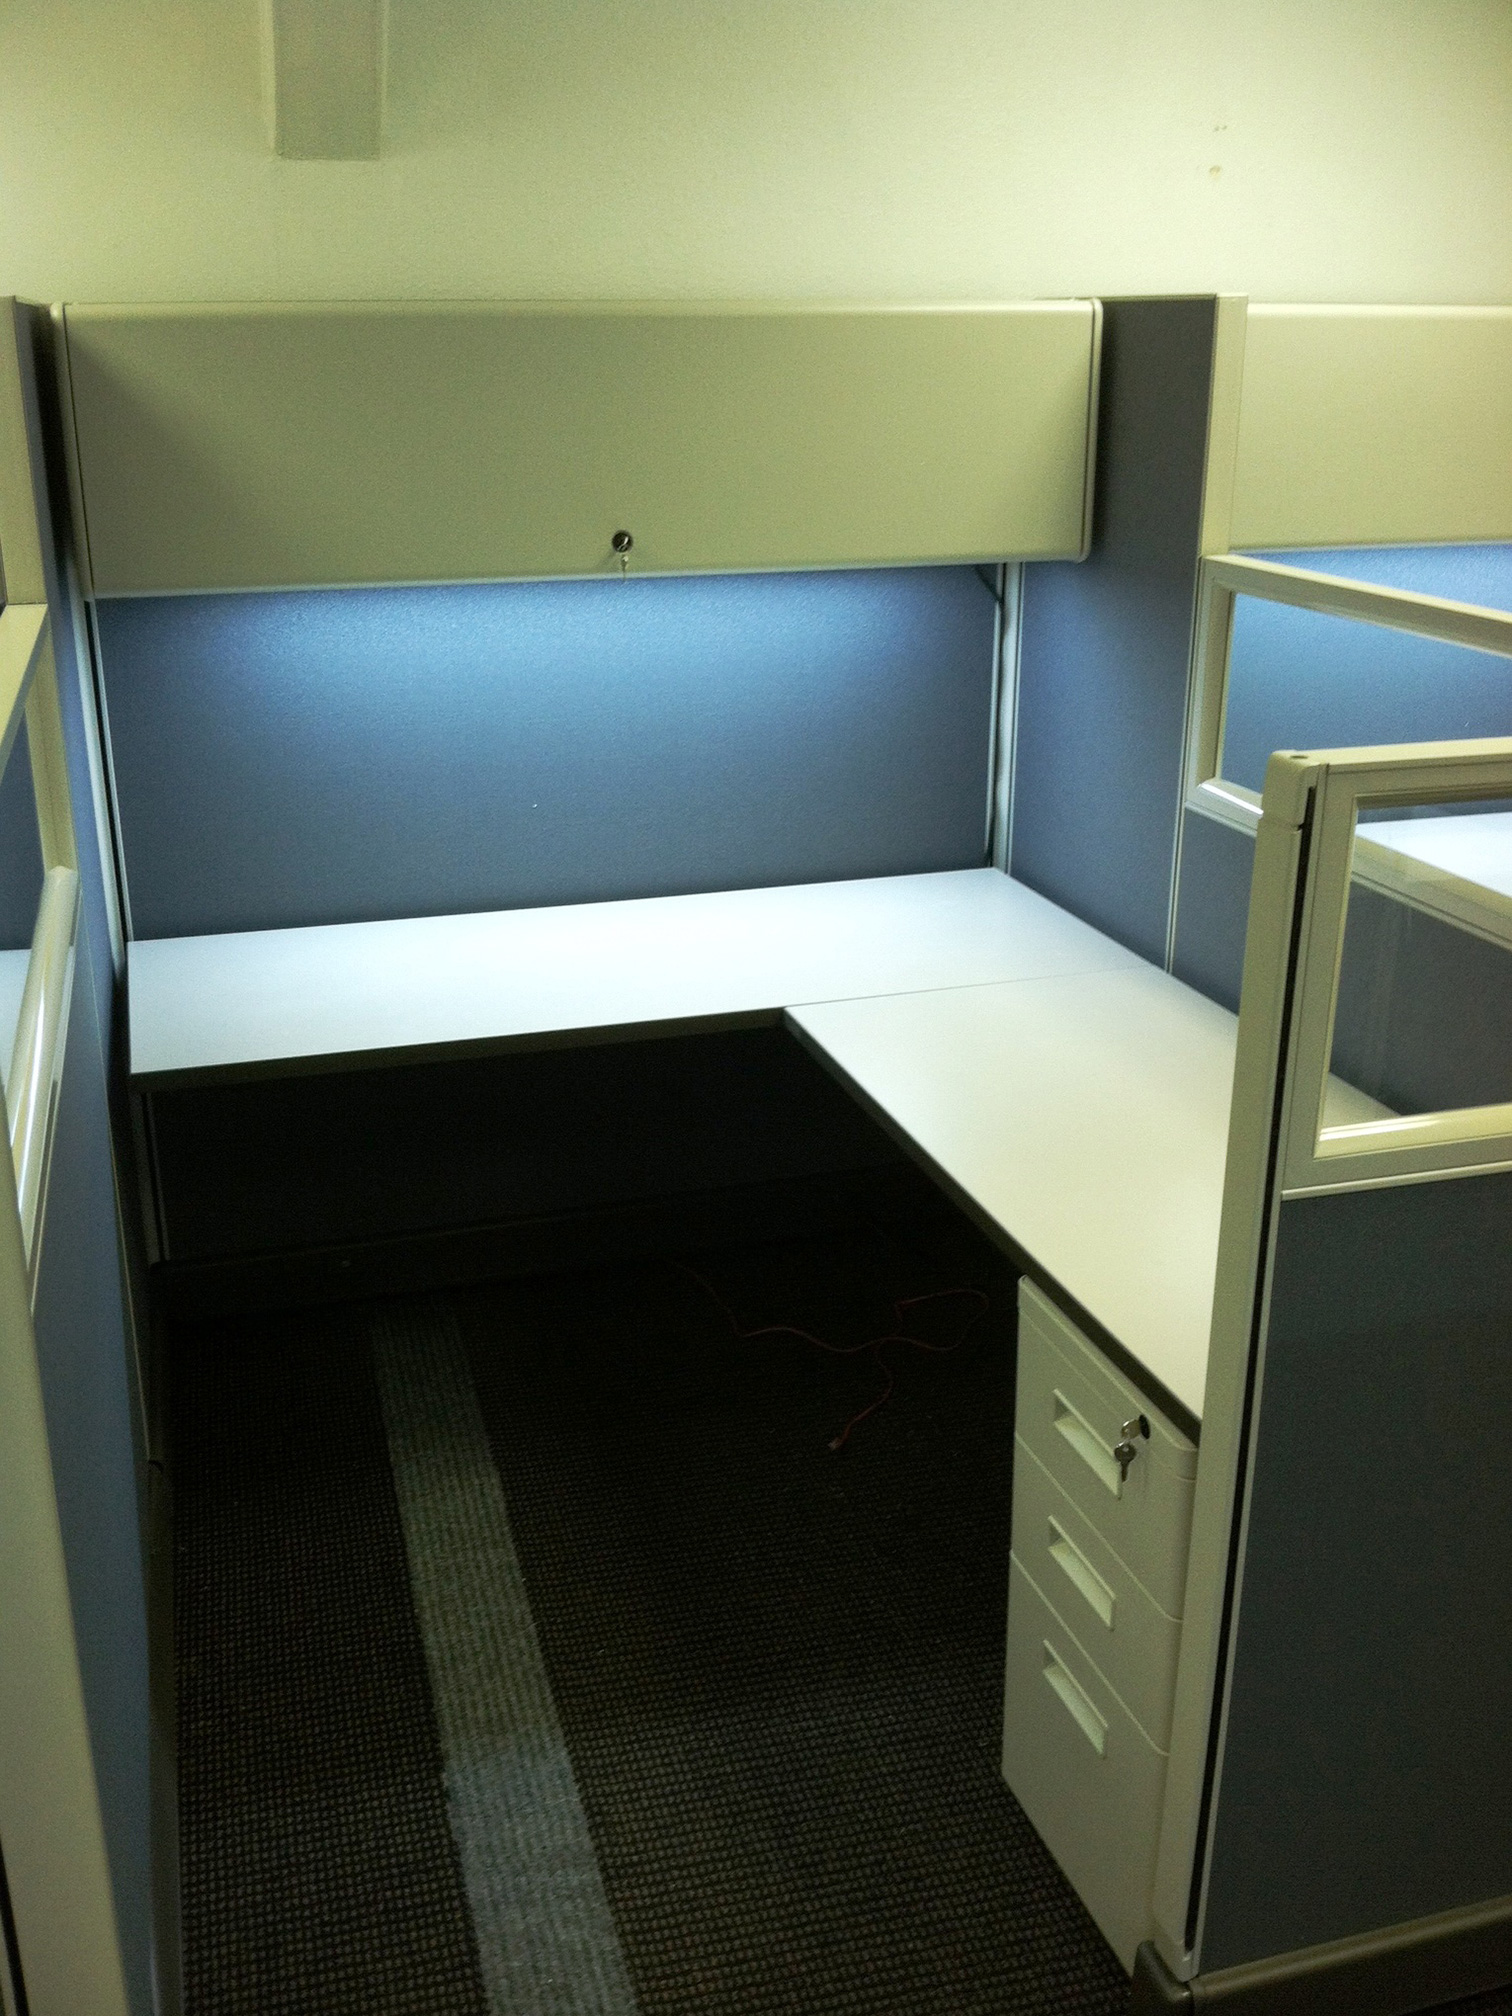 cubicle-privacy-walls-manasota-office-supplies-llc.jpg